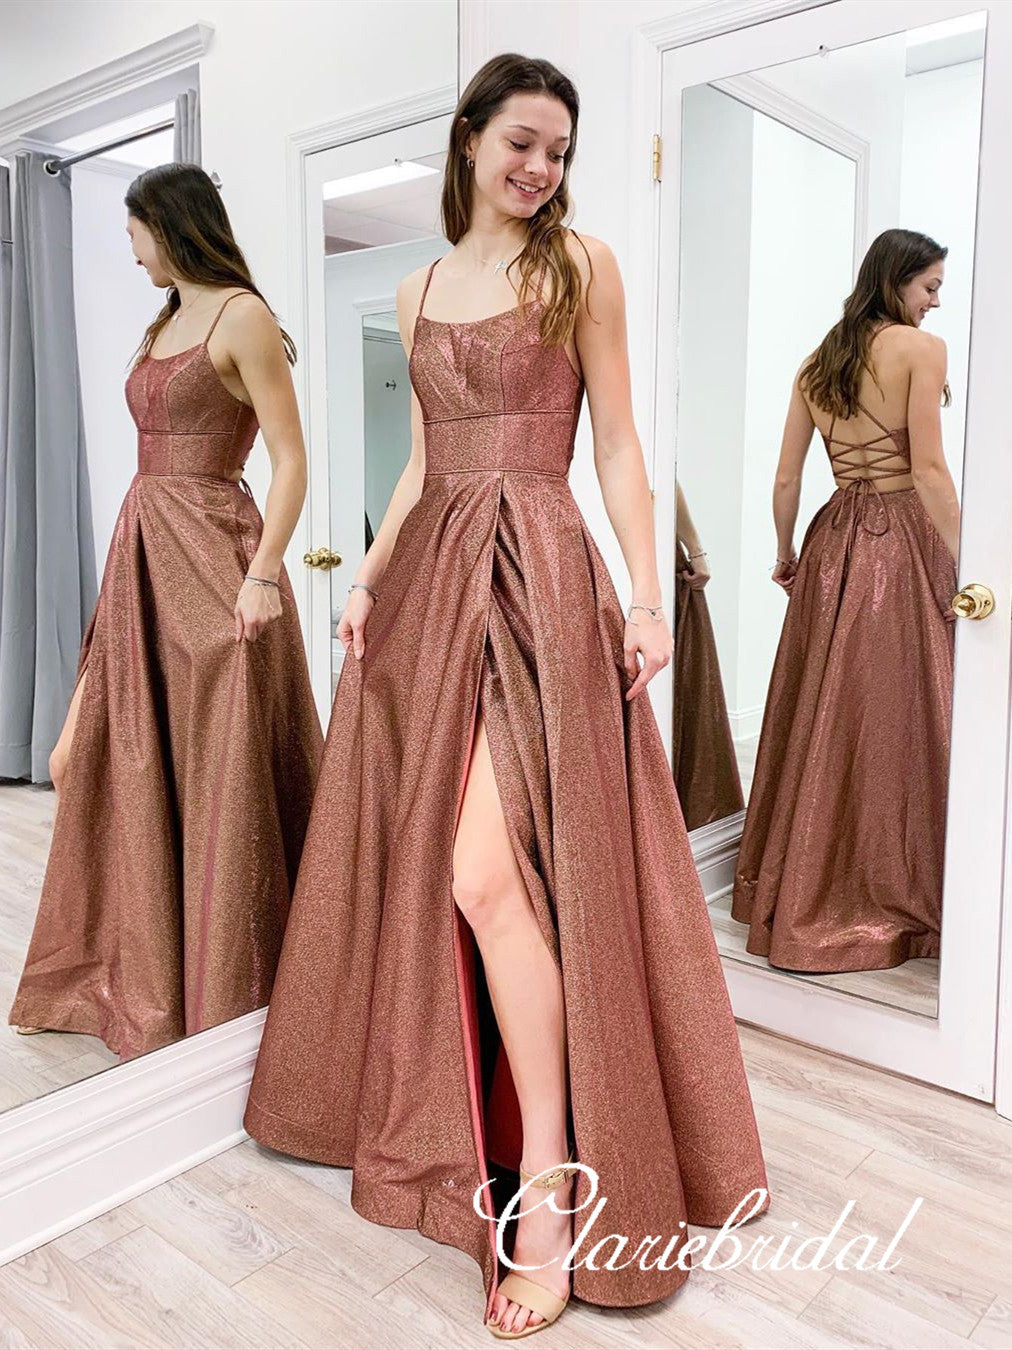 Straps Lace Up Shemmering Fabric Long Prom Dresses, 2020 Prom Dresses, Cheap Prom Dresses, Popular Prom Dresses